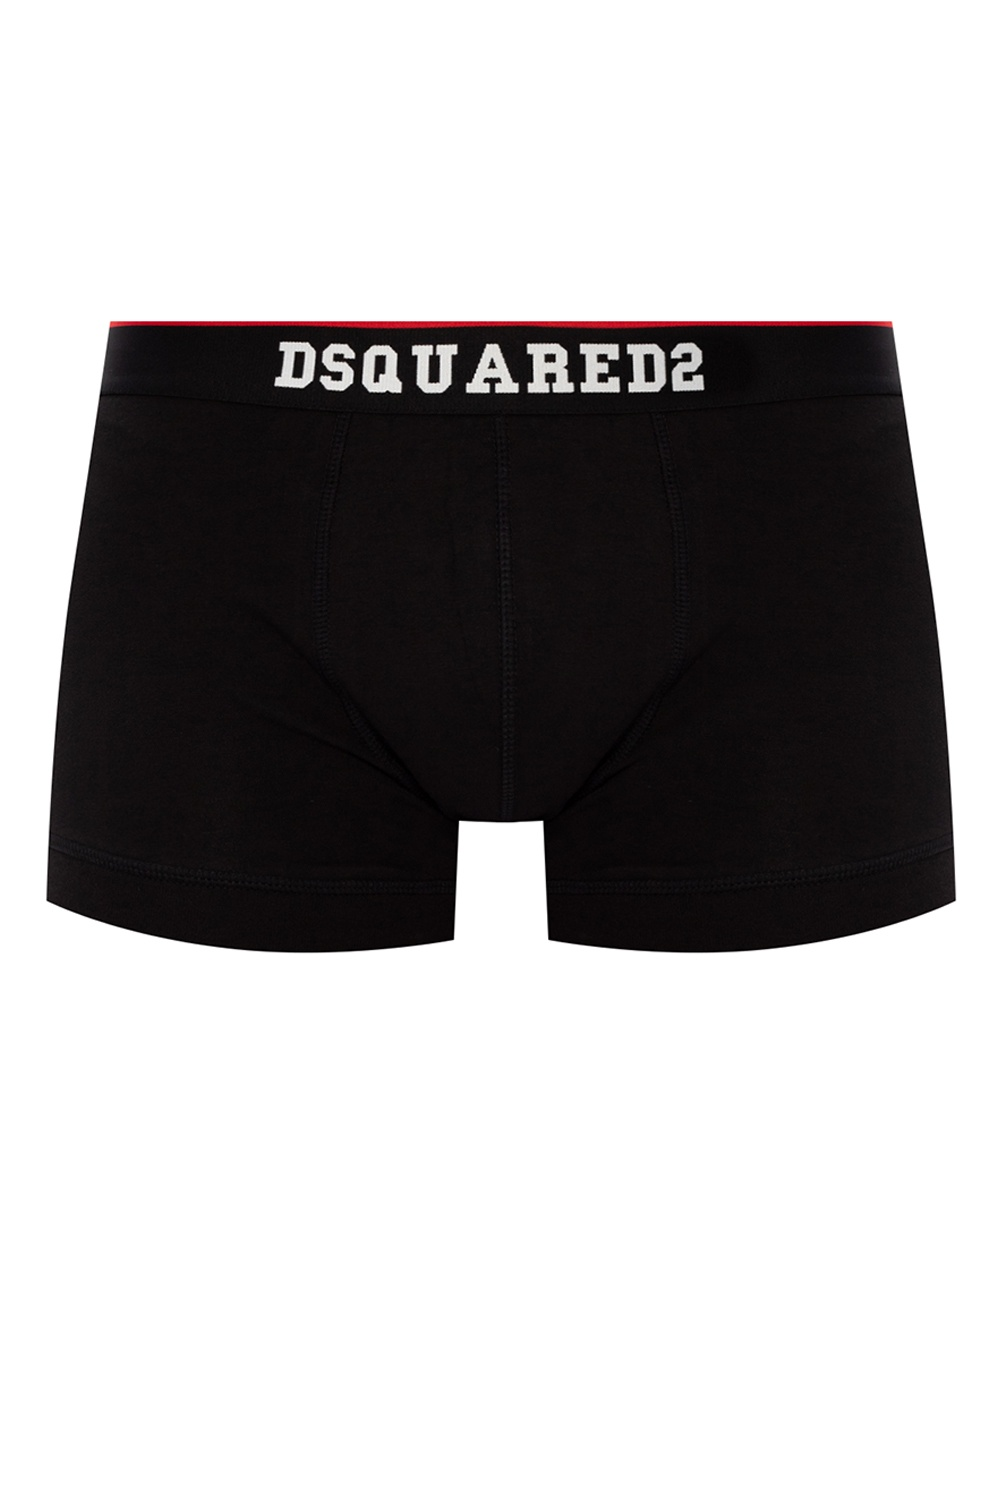 Dsquared2 Boxers with logo